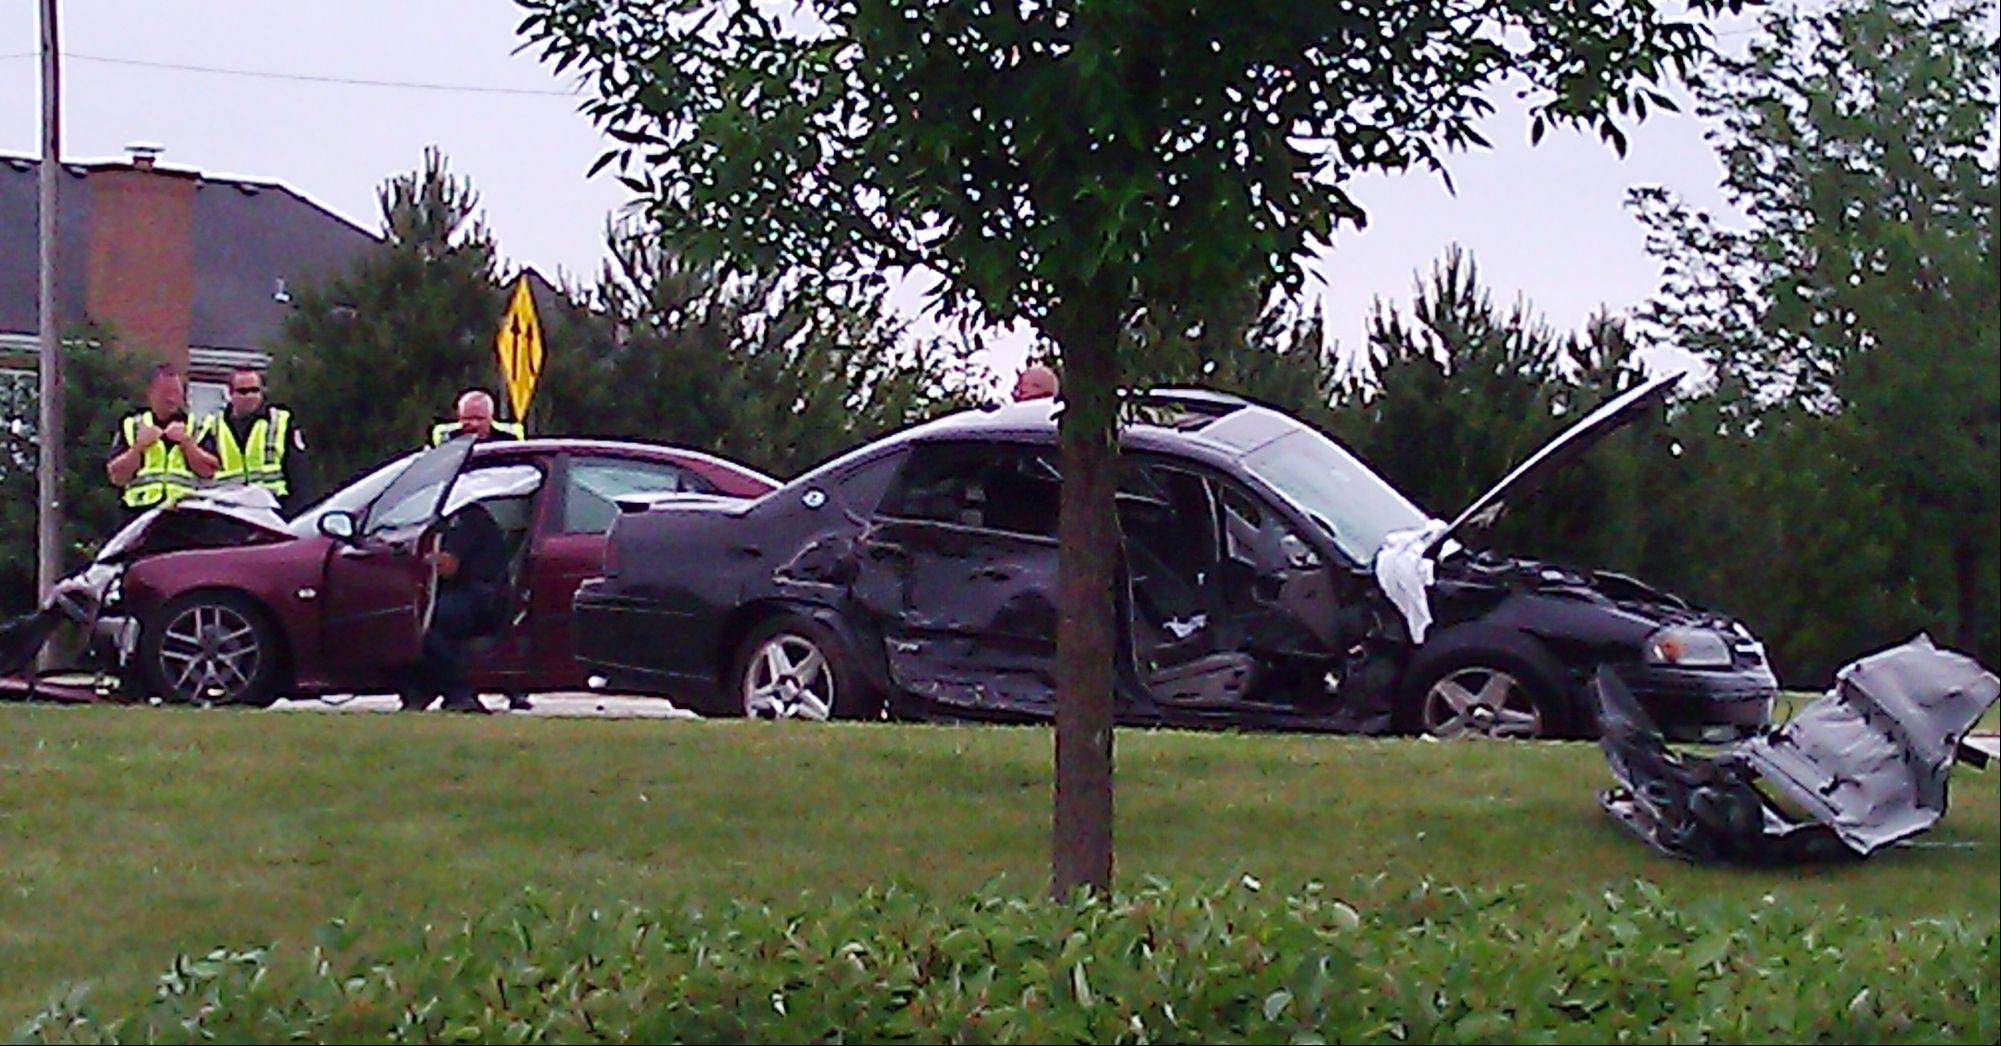 This is the scene of the fatal accident Friday morning at the intersection of Quentin Road and Euclid Avenue in Palatine.